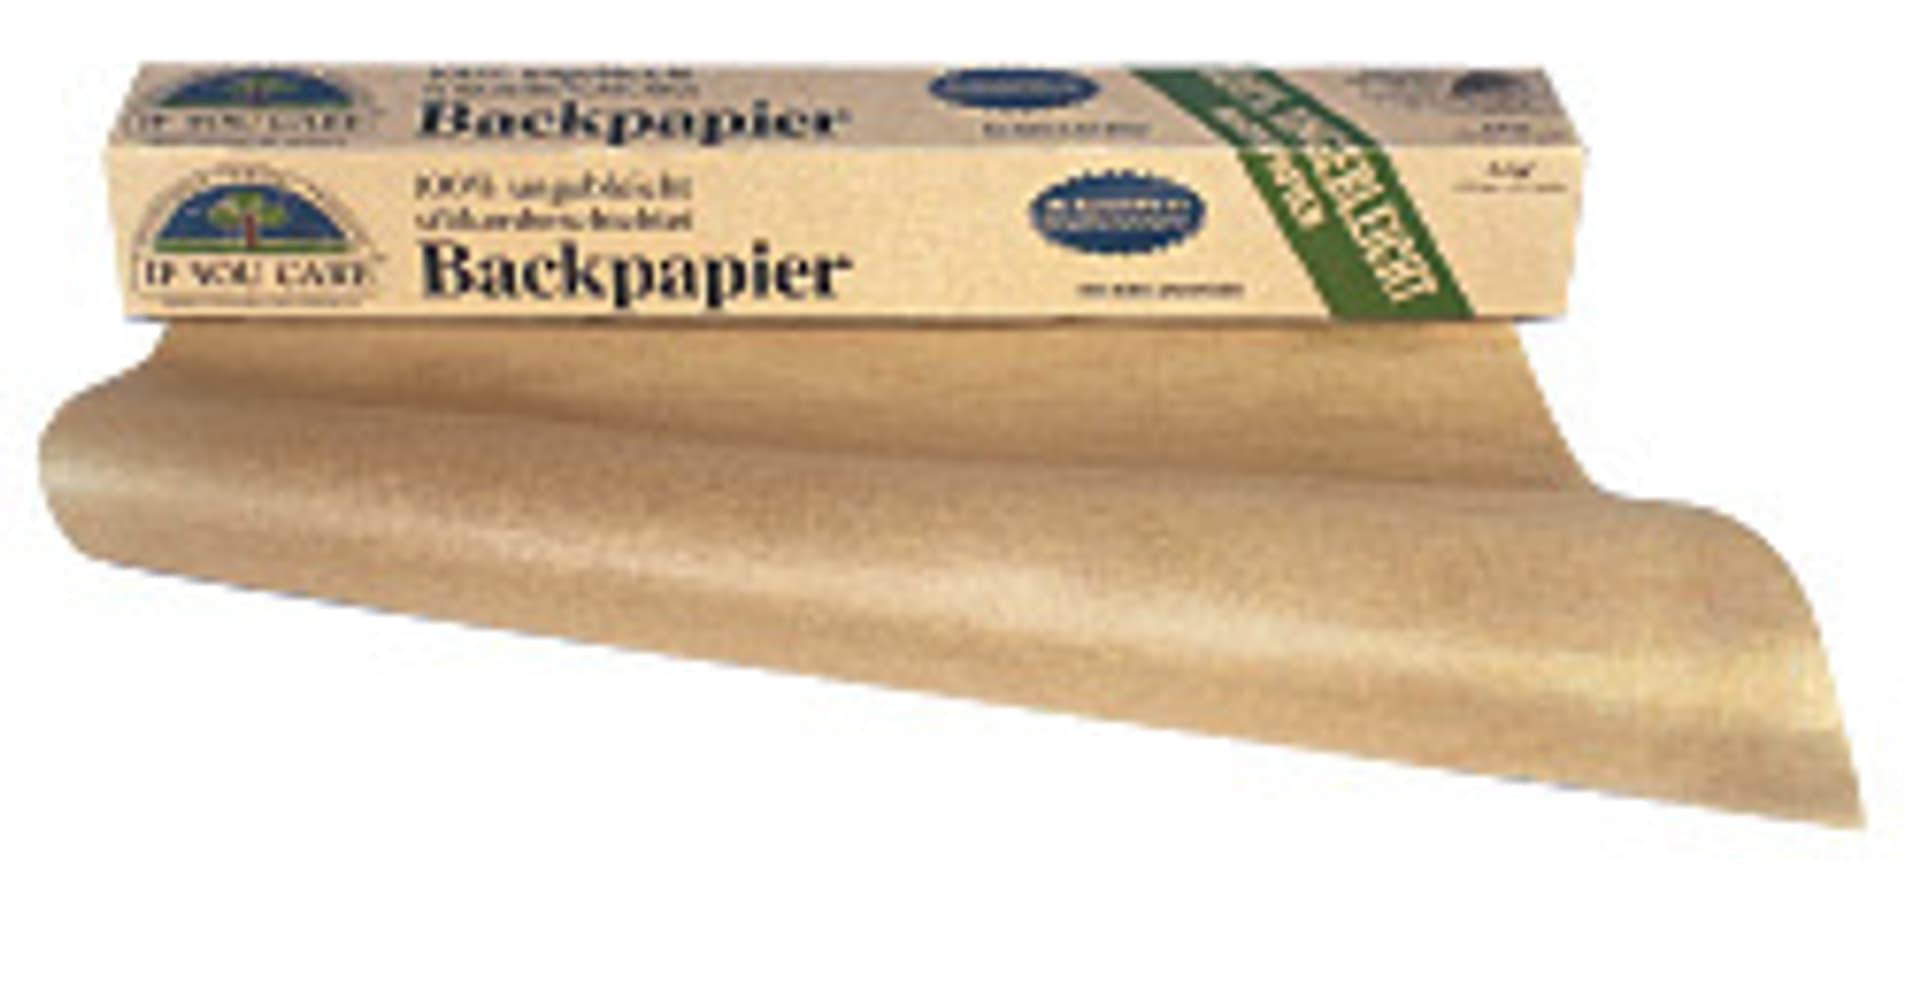 Wi backpapier